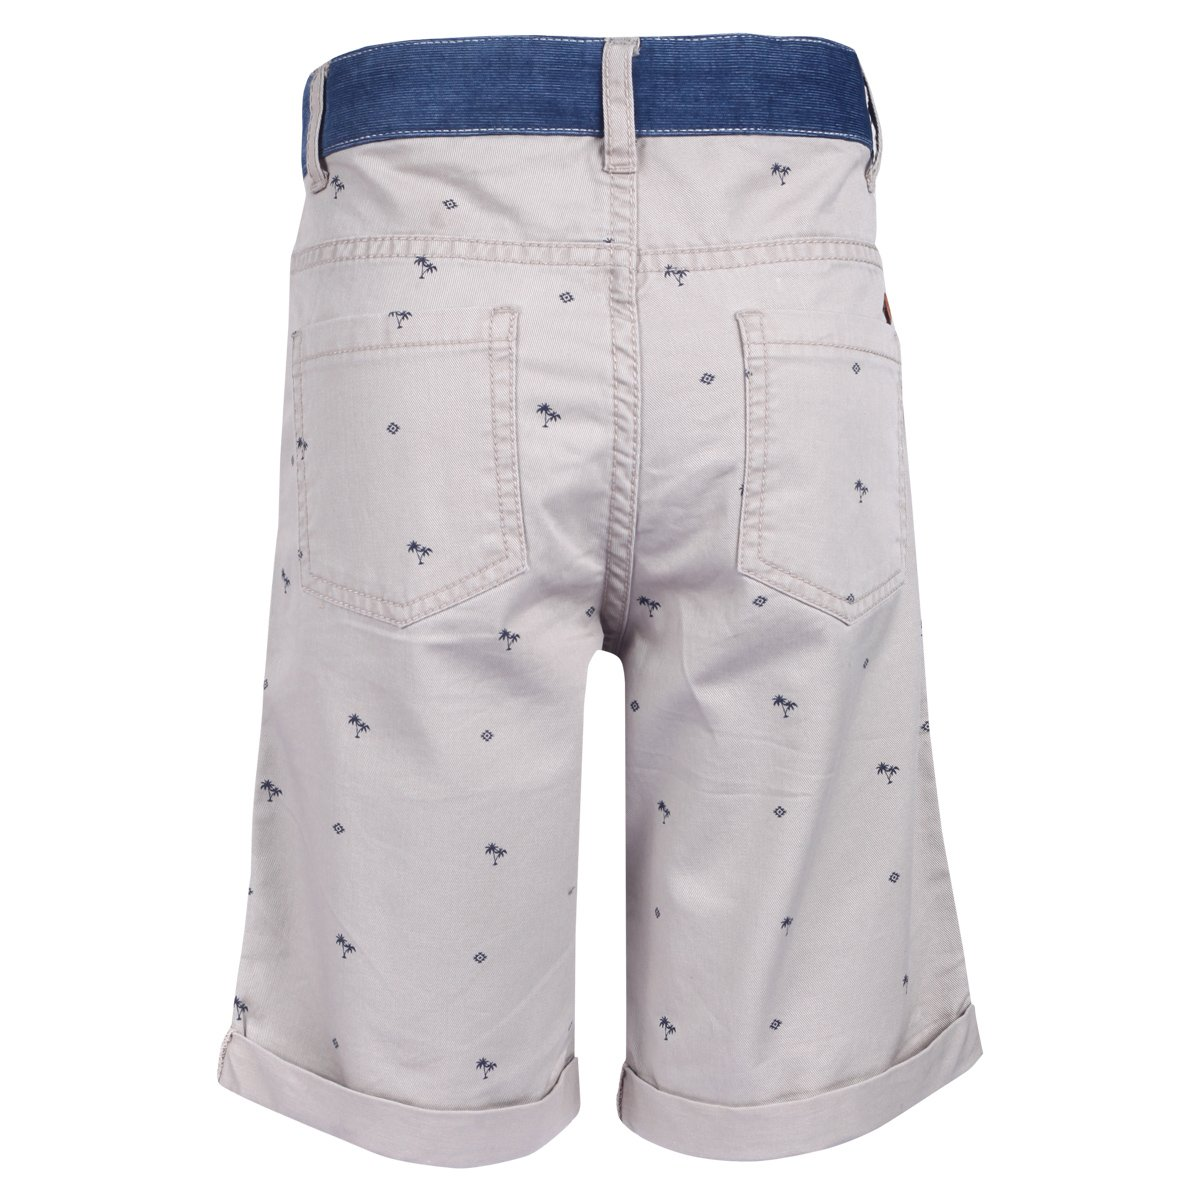 24178c81939d SUPERYOUNG Super Young Shorts for Boys Bermuda for Kids - Off White Shorts  for Boys with Side Pockets - Cotton Material Shorts Shorts for Boys   Amazon.in  ...